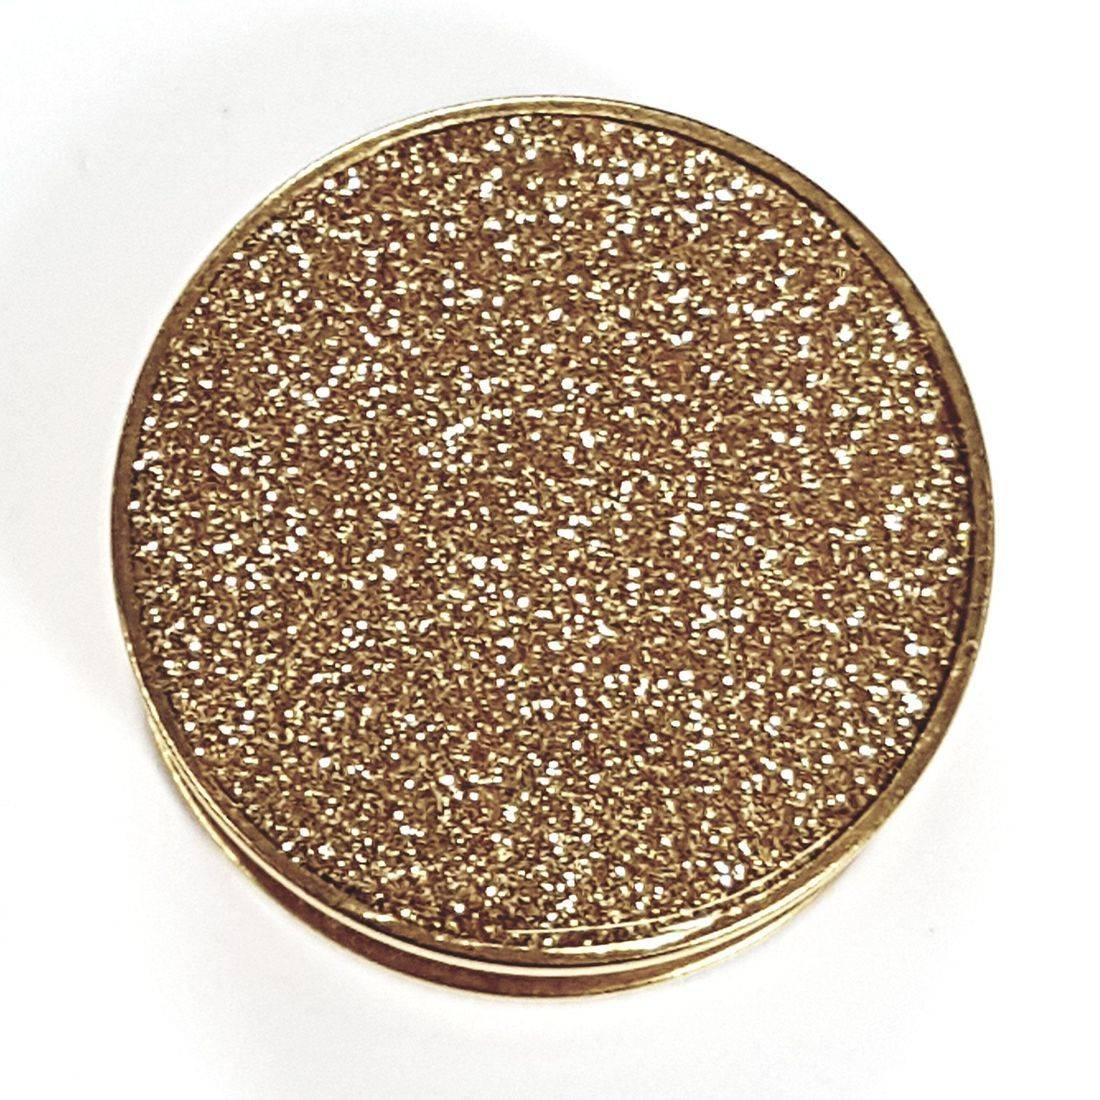 Titanium gold glitter plug  available from Kazbah online or our Leicester city centre store